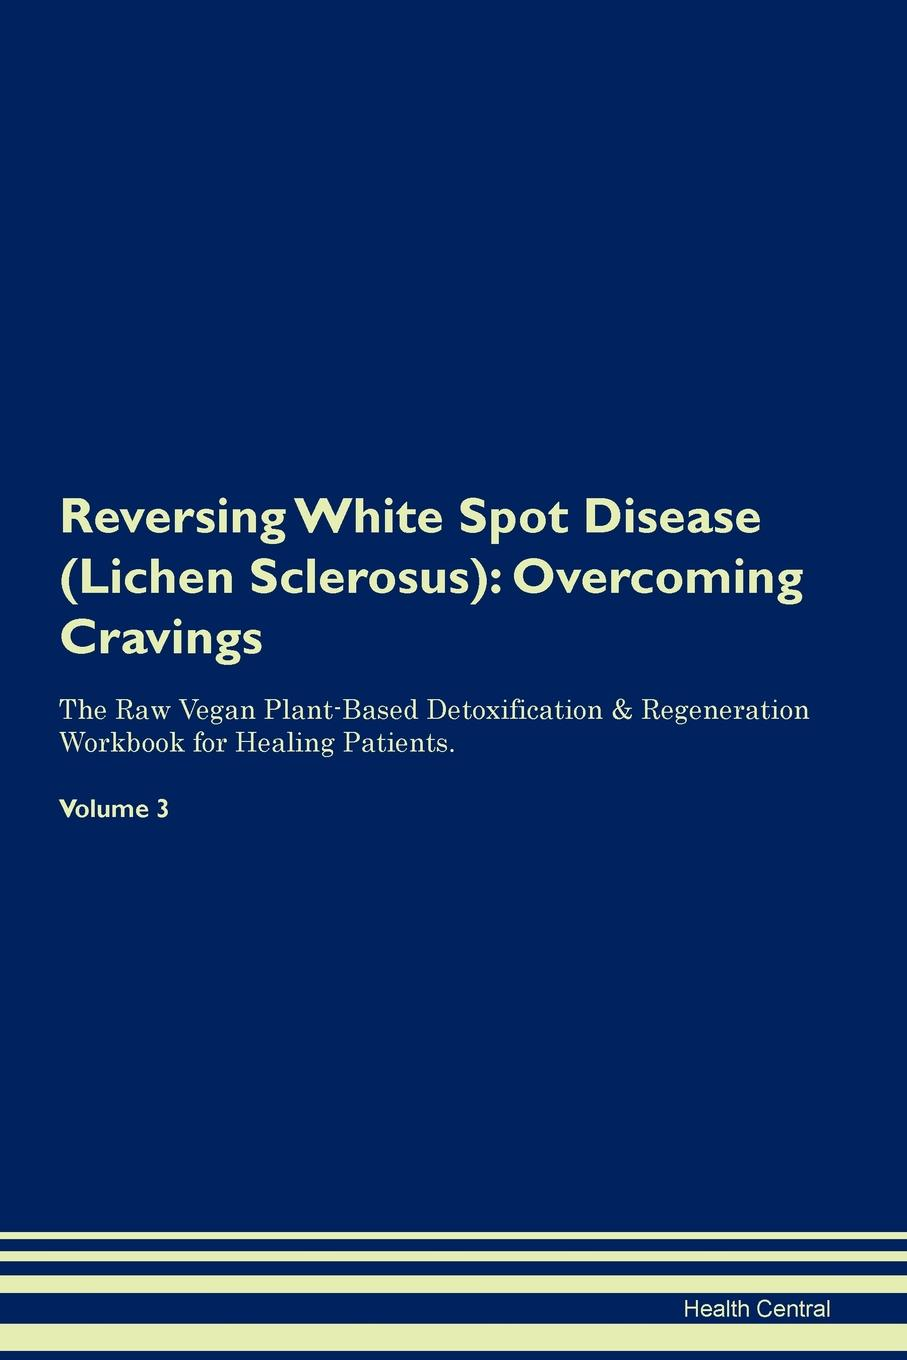 Фото - Health Central Reversing White Spot Disease (Lichen Sclerosus). Overcoming Cravings The Raw Vegan Plant-Based Detoxification & Regeneration Workbook for Healing Patients. Volume 3 health central reversing lichen sclerosus overcoming cravings the raw vegan plant based detoxification regeneration workbook for healing patients volume 3